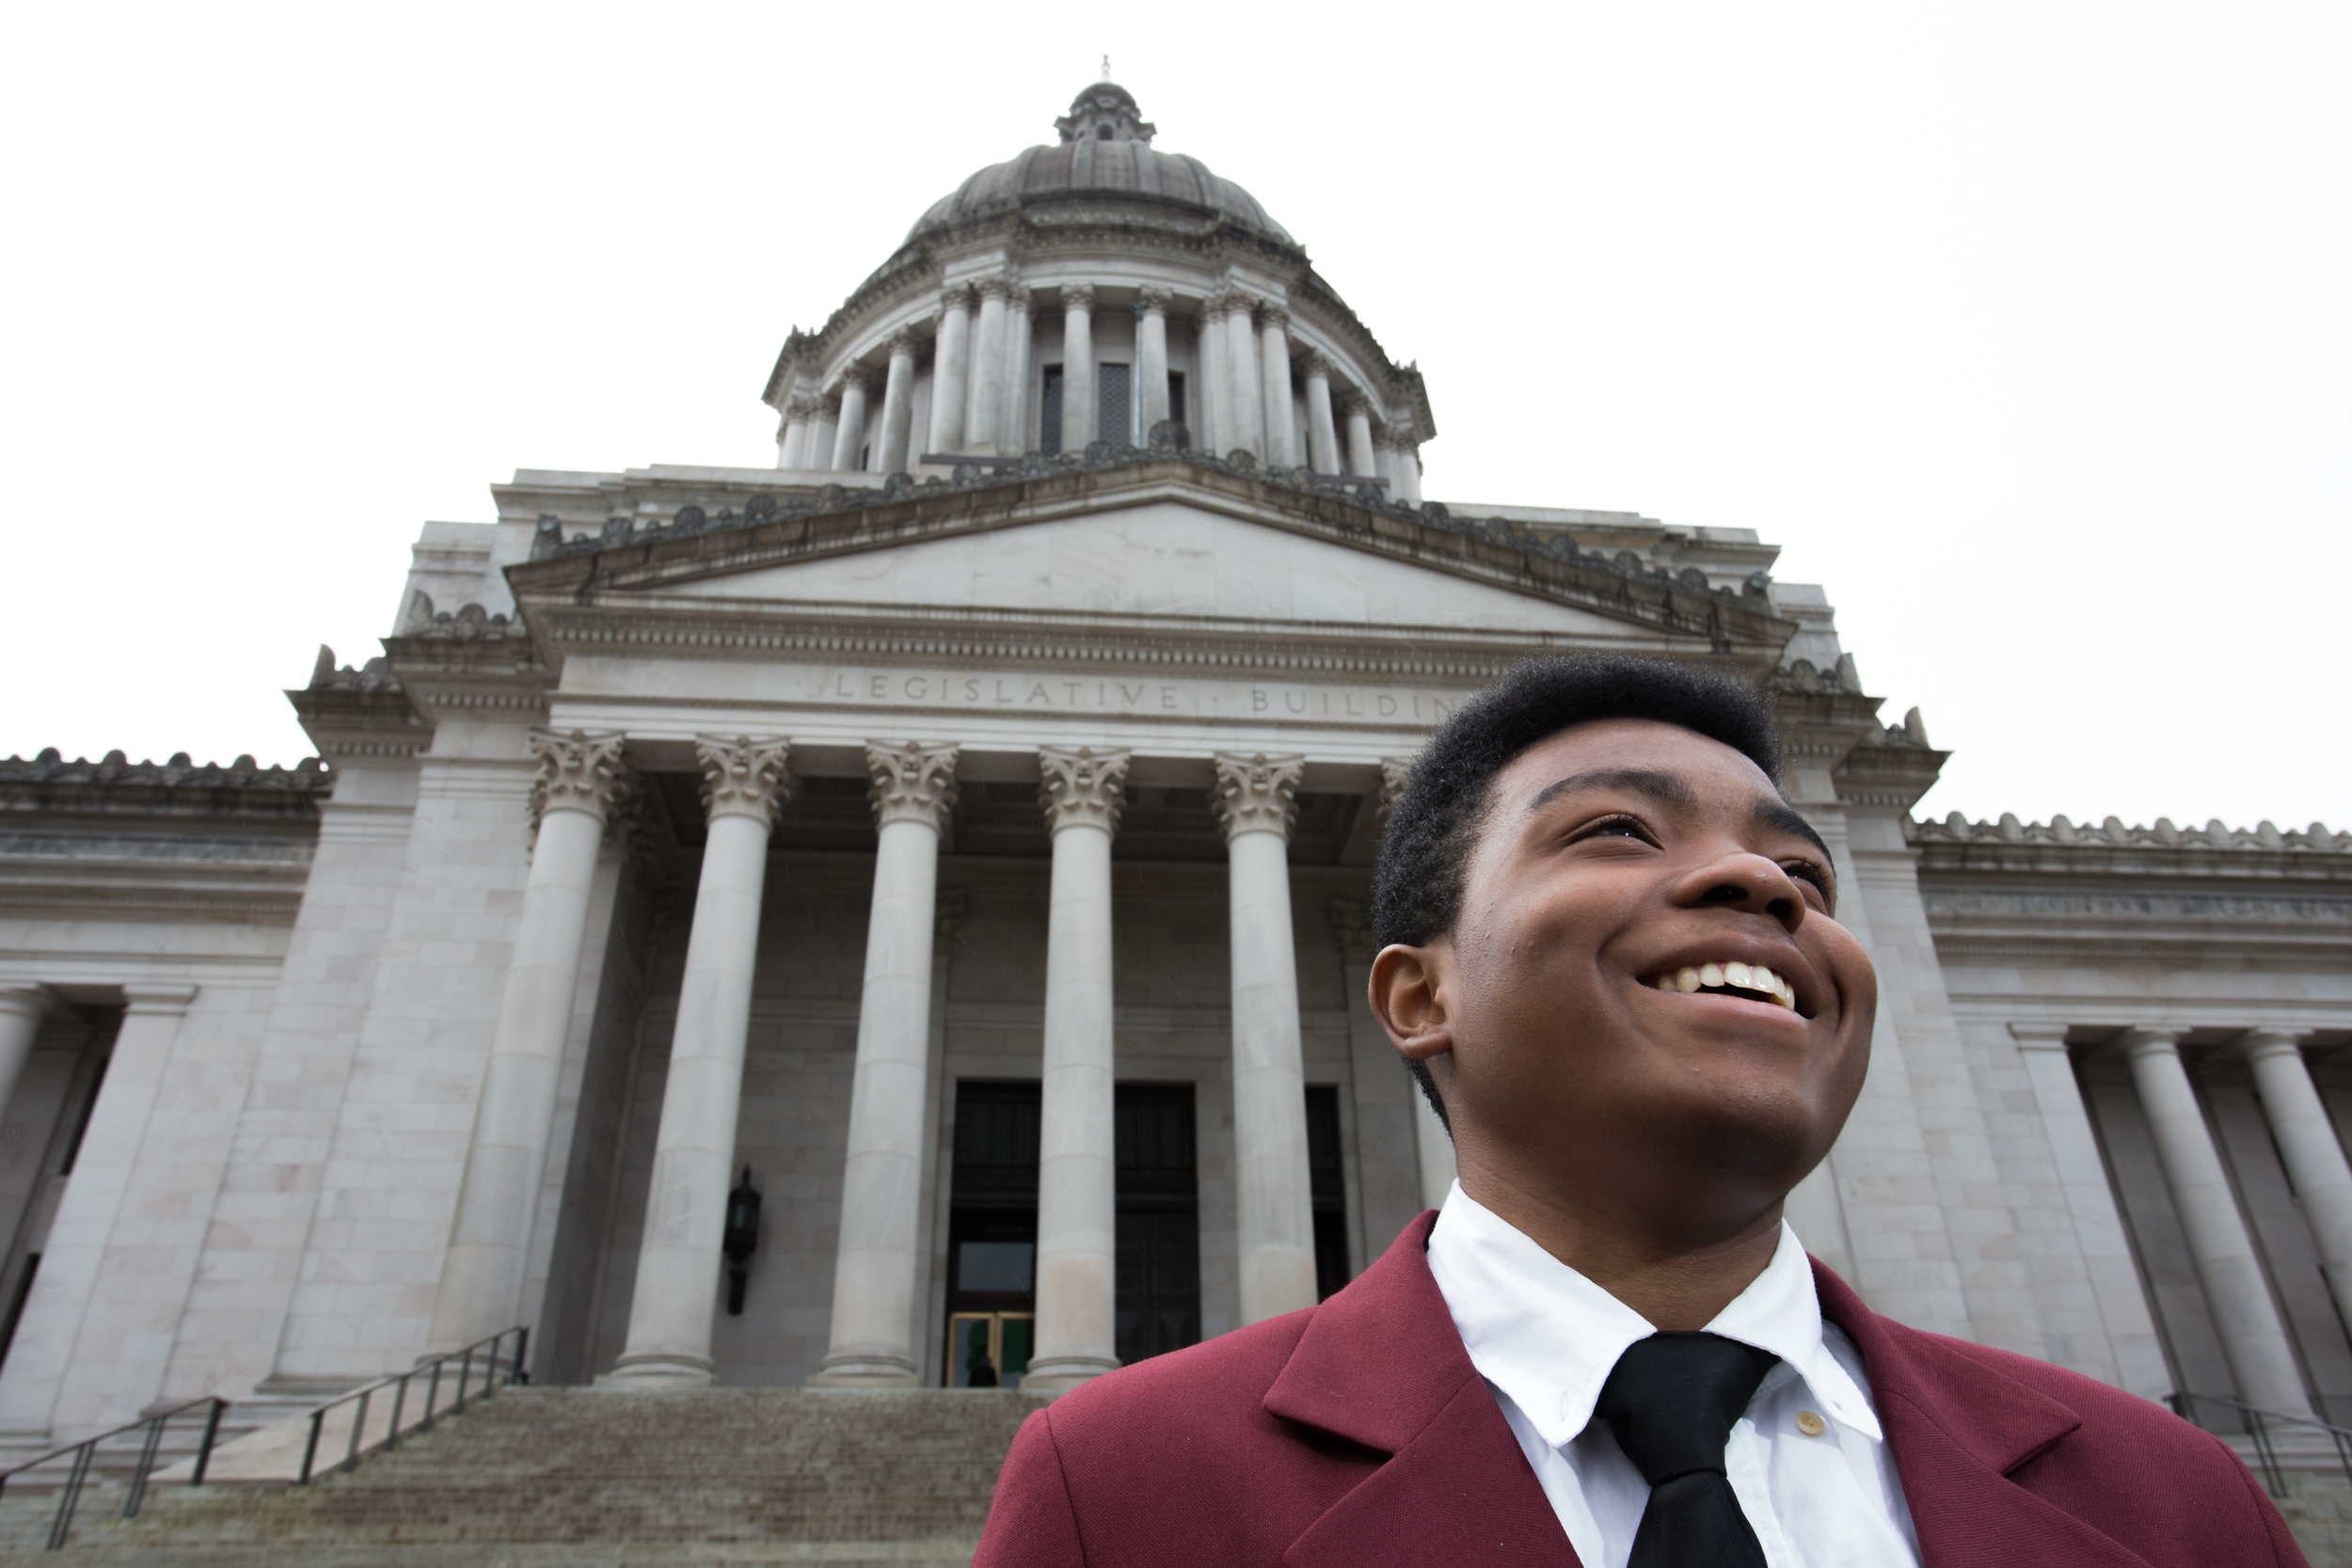 Marcelas Owens, a Page for Washington State Senator Pramila Jayapal. Owens has been a health advocate since the age of 10, after his mother passed away and stood behind President Obama when he signed the Affordable Care Act.